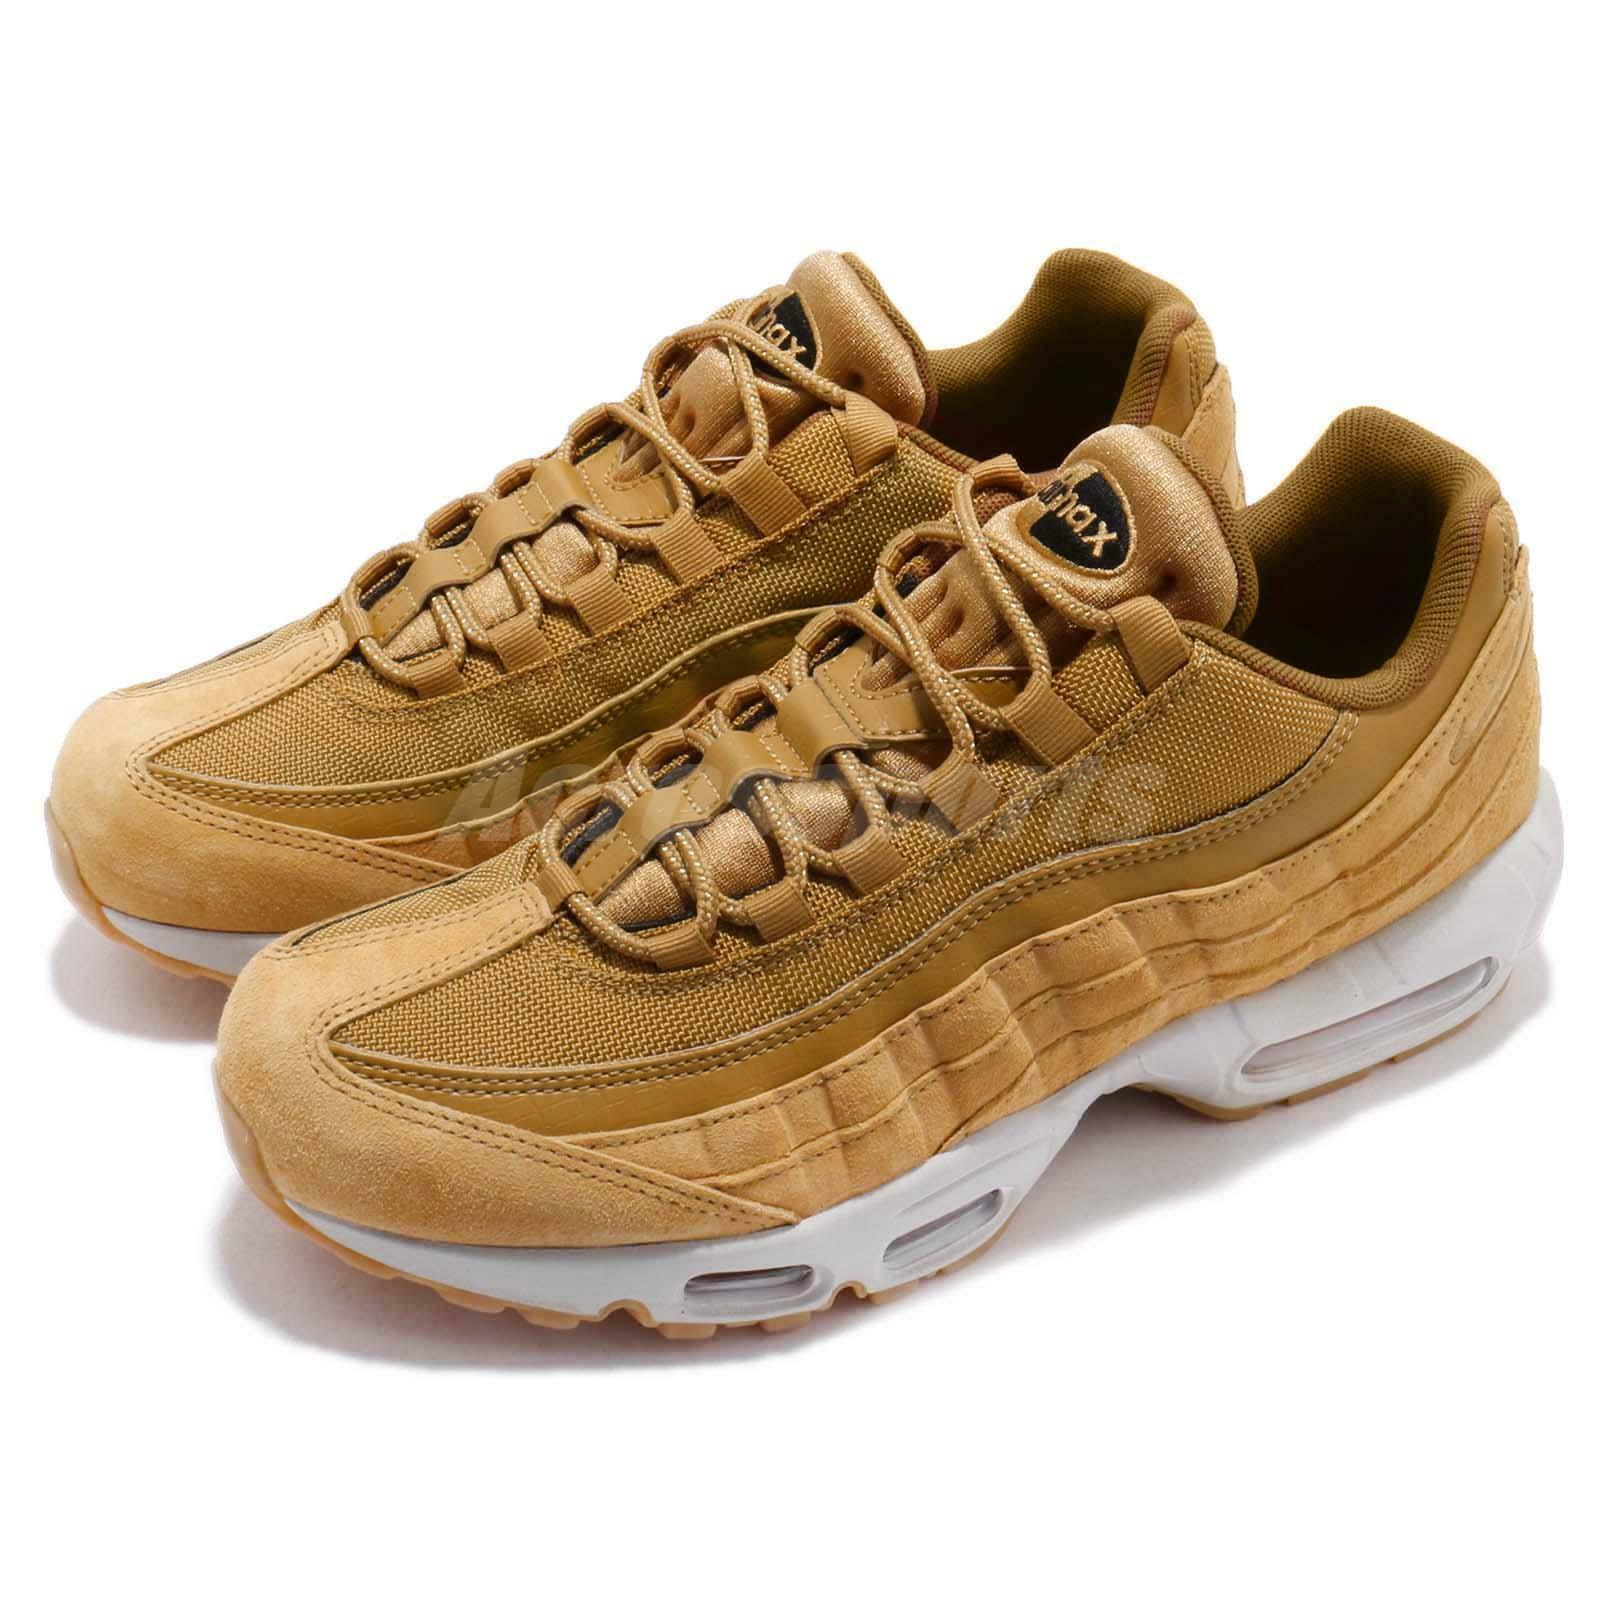 Nike Air Max 95 SE Wheat Pack Light Bone Men Running shoes Sneakers AJ2018-700